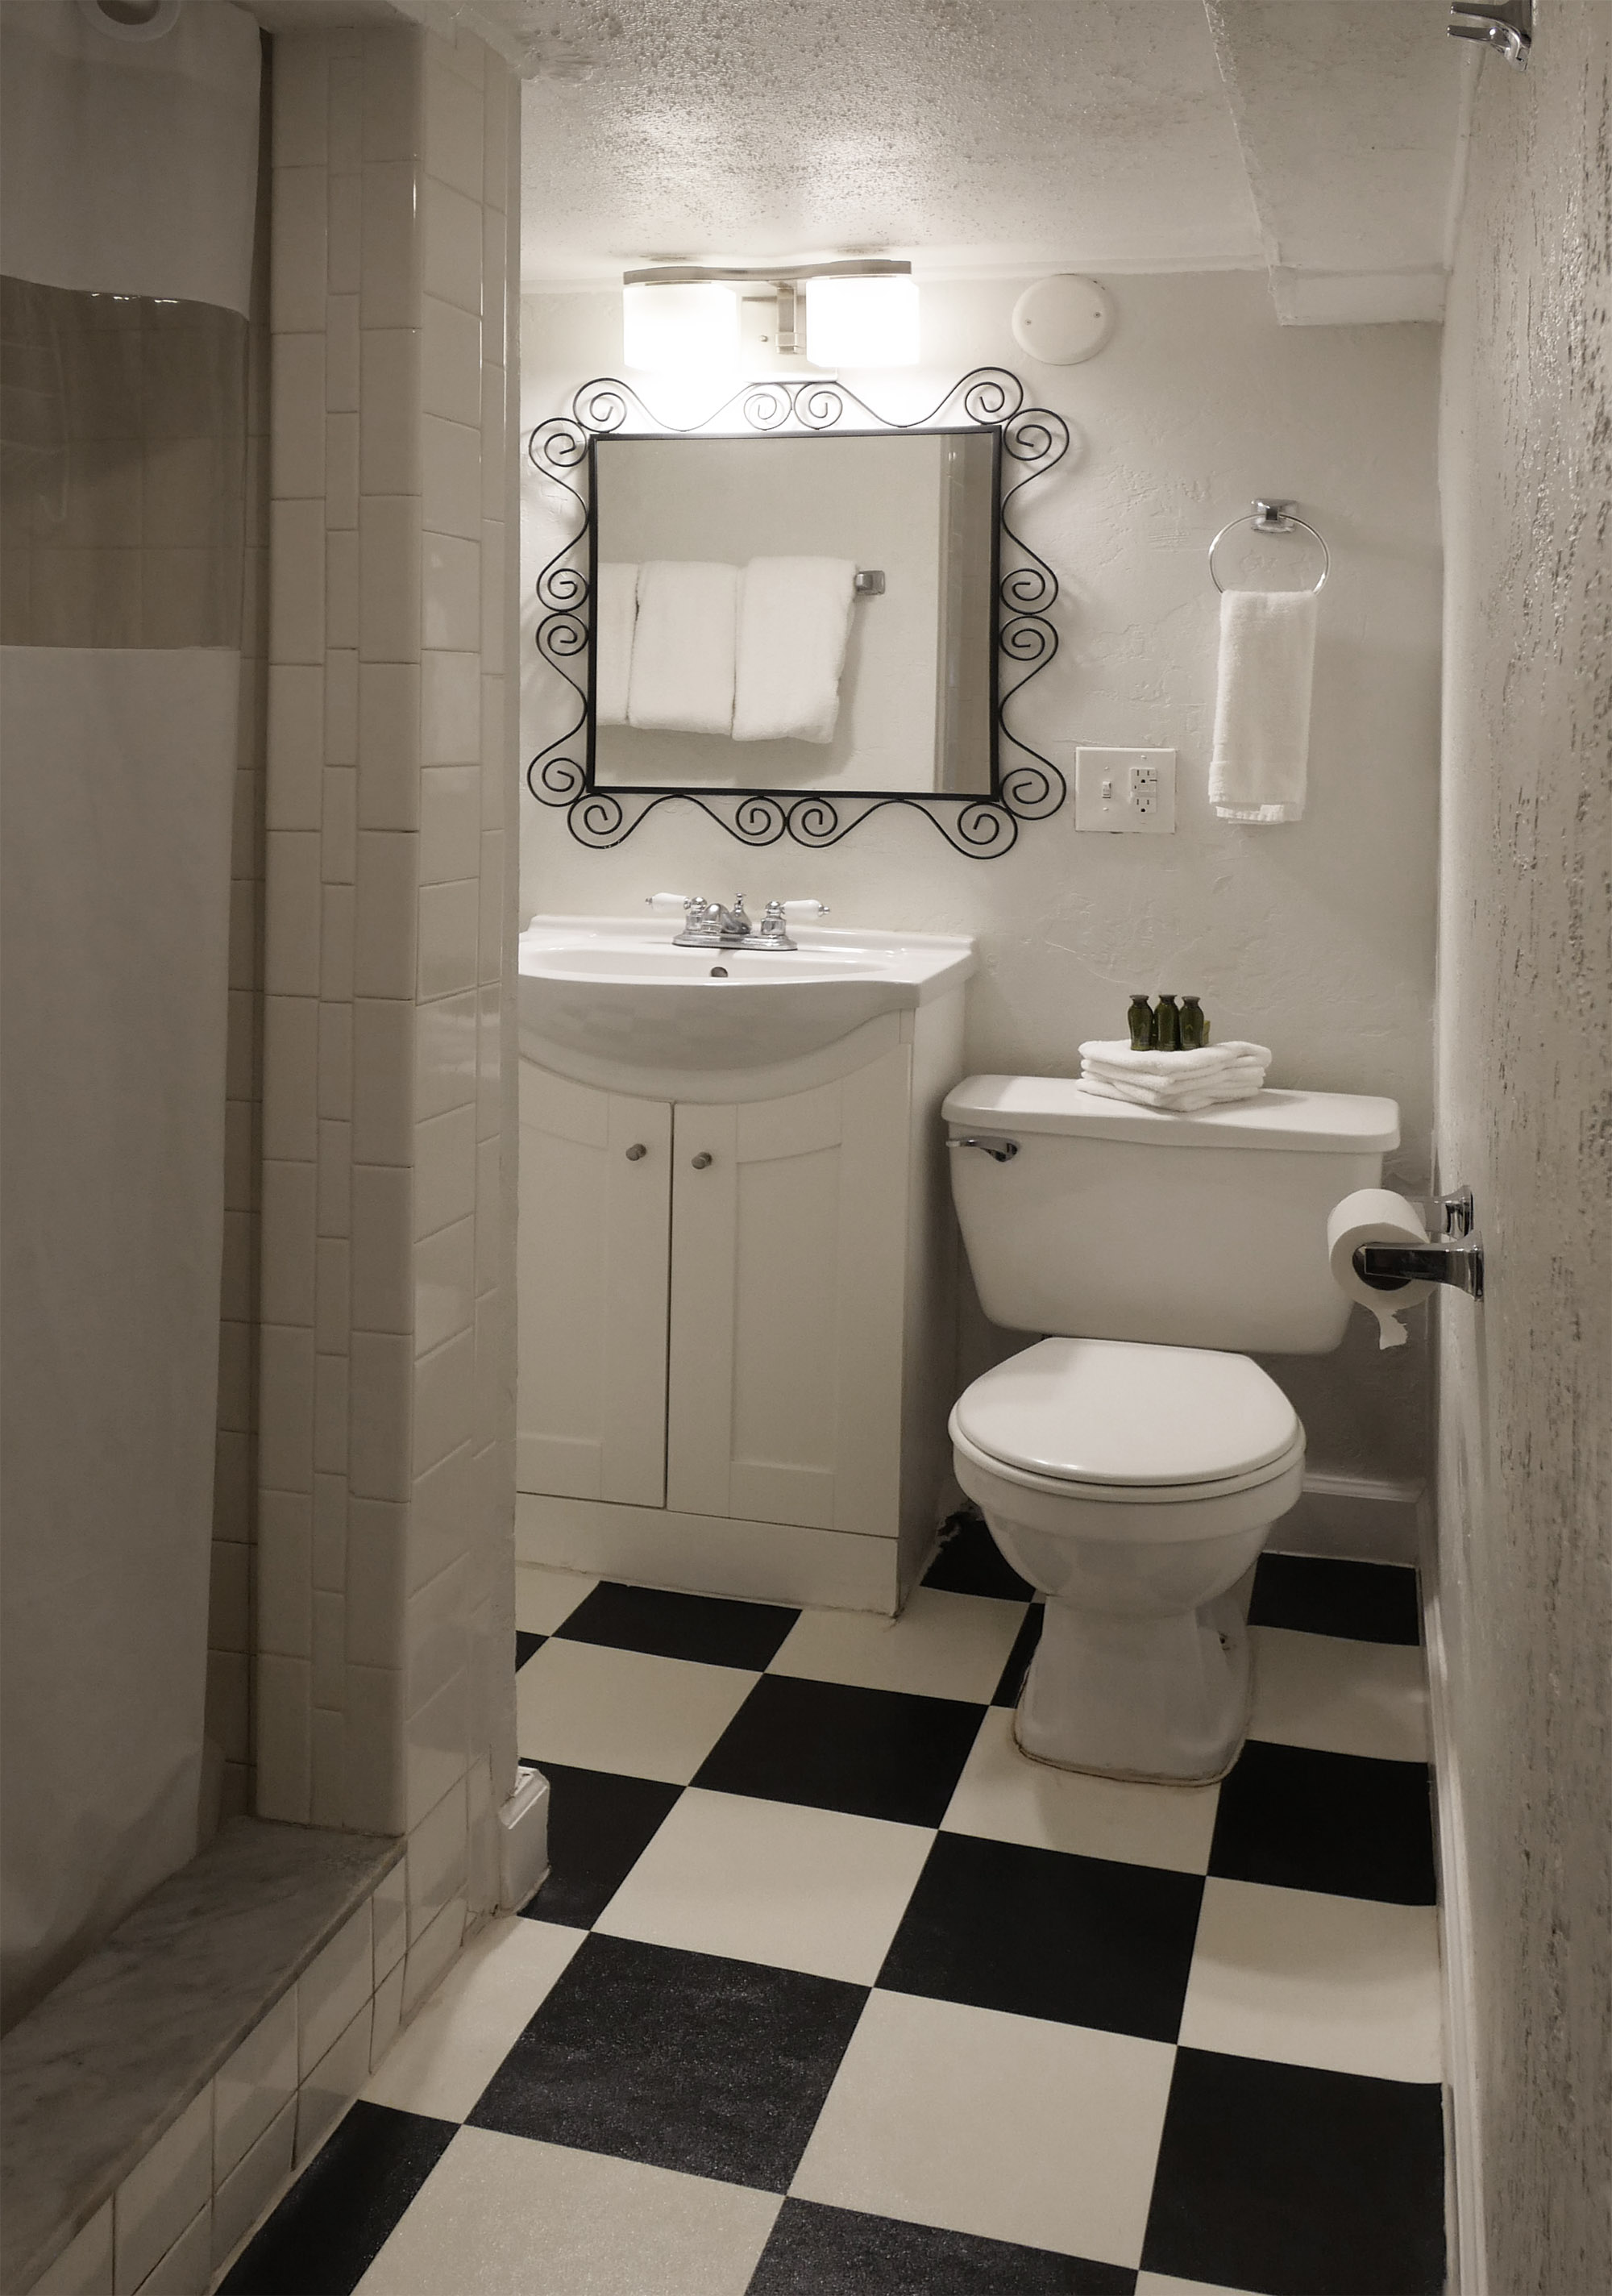 Unit A Bathroom Interior